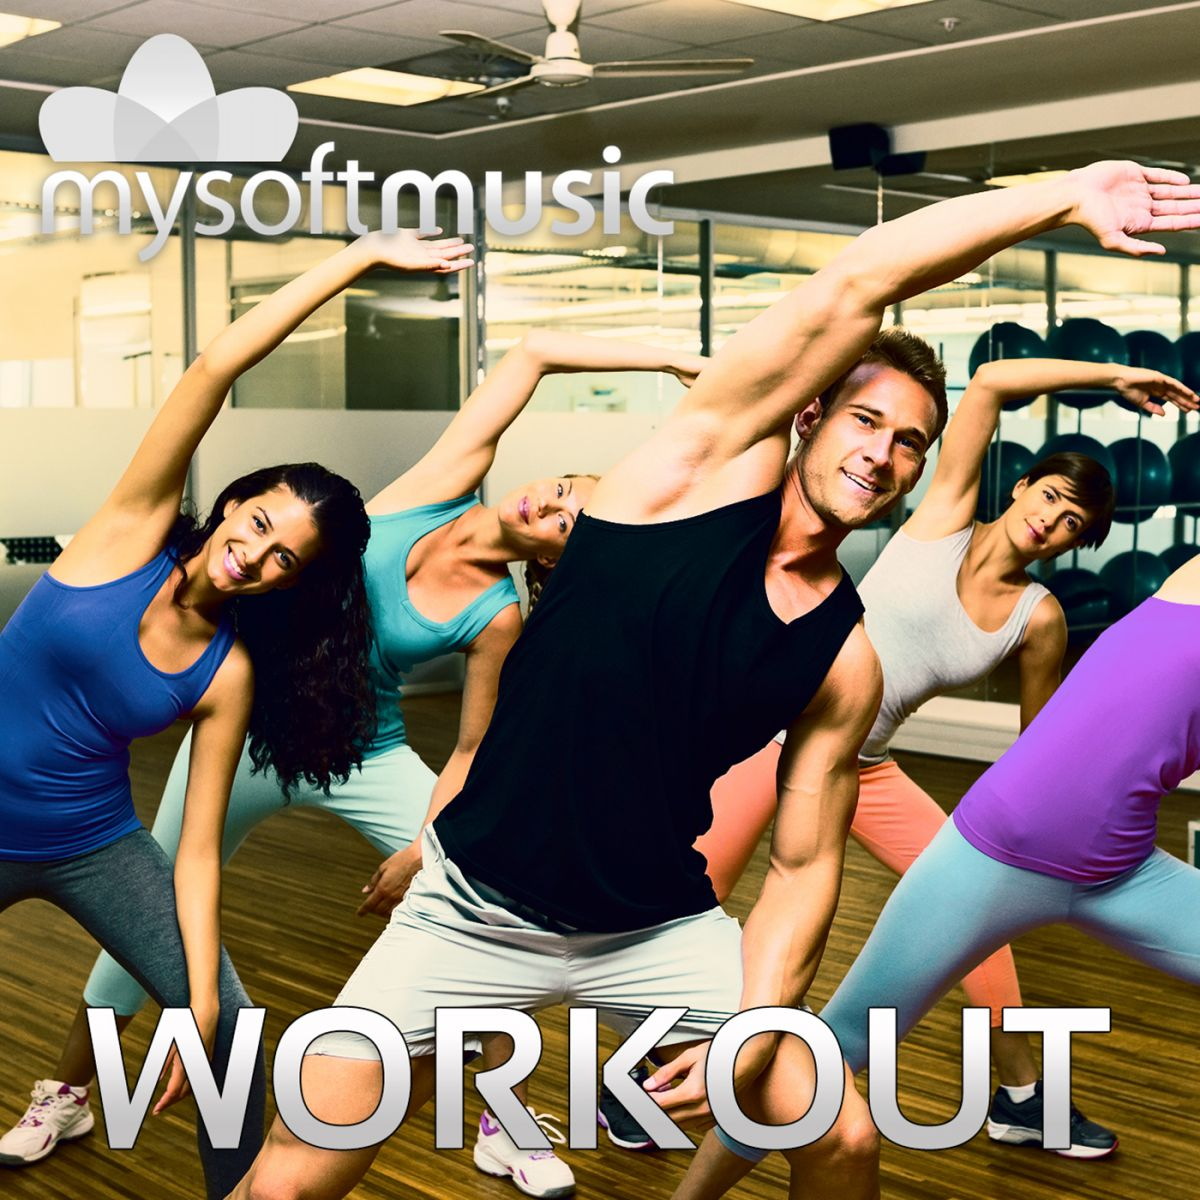 Gym Workout Songs Mp3 Free Download 2017 Pagalworld Gym Workout